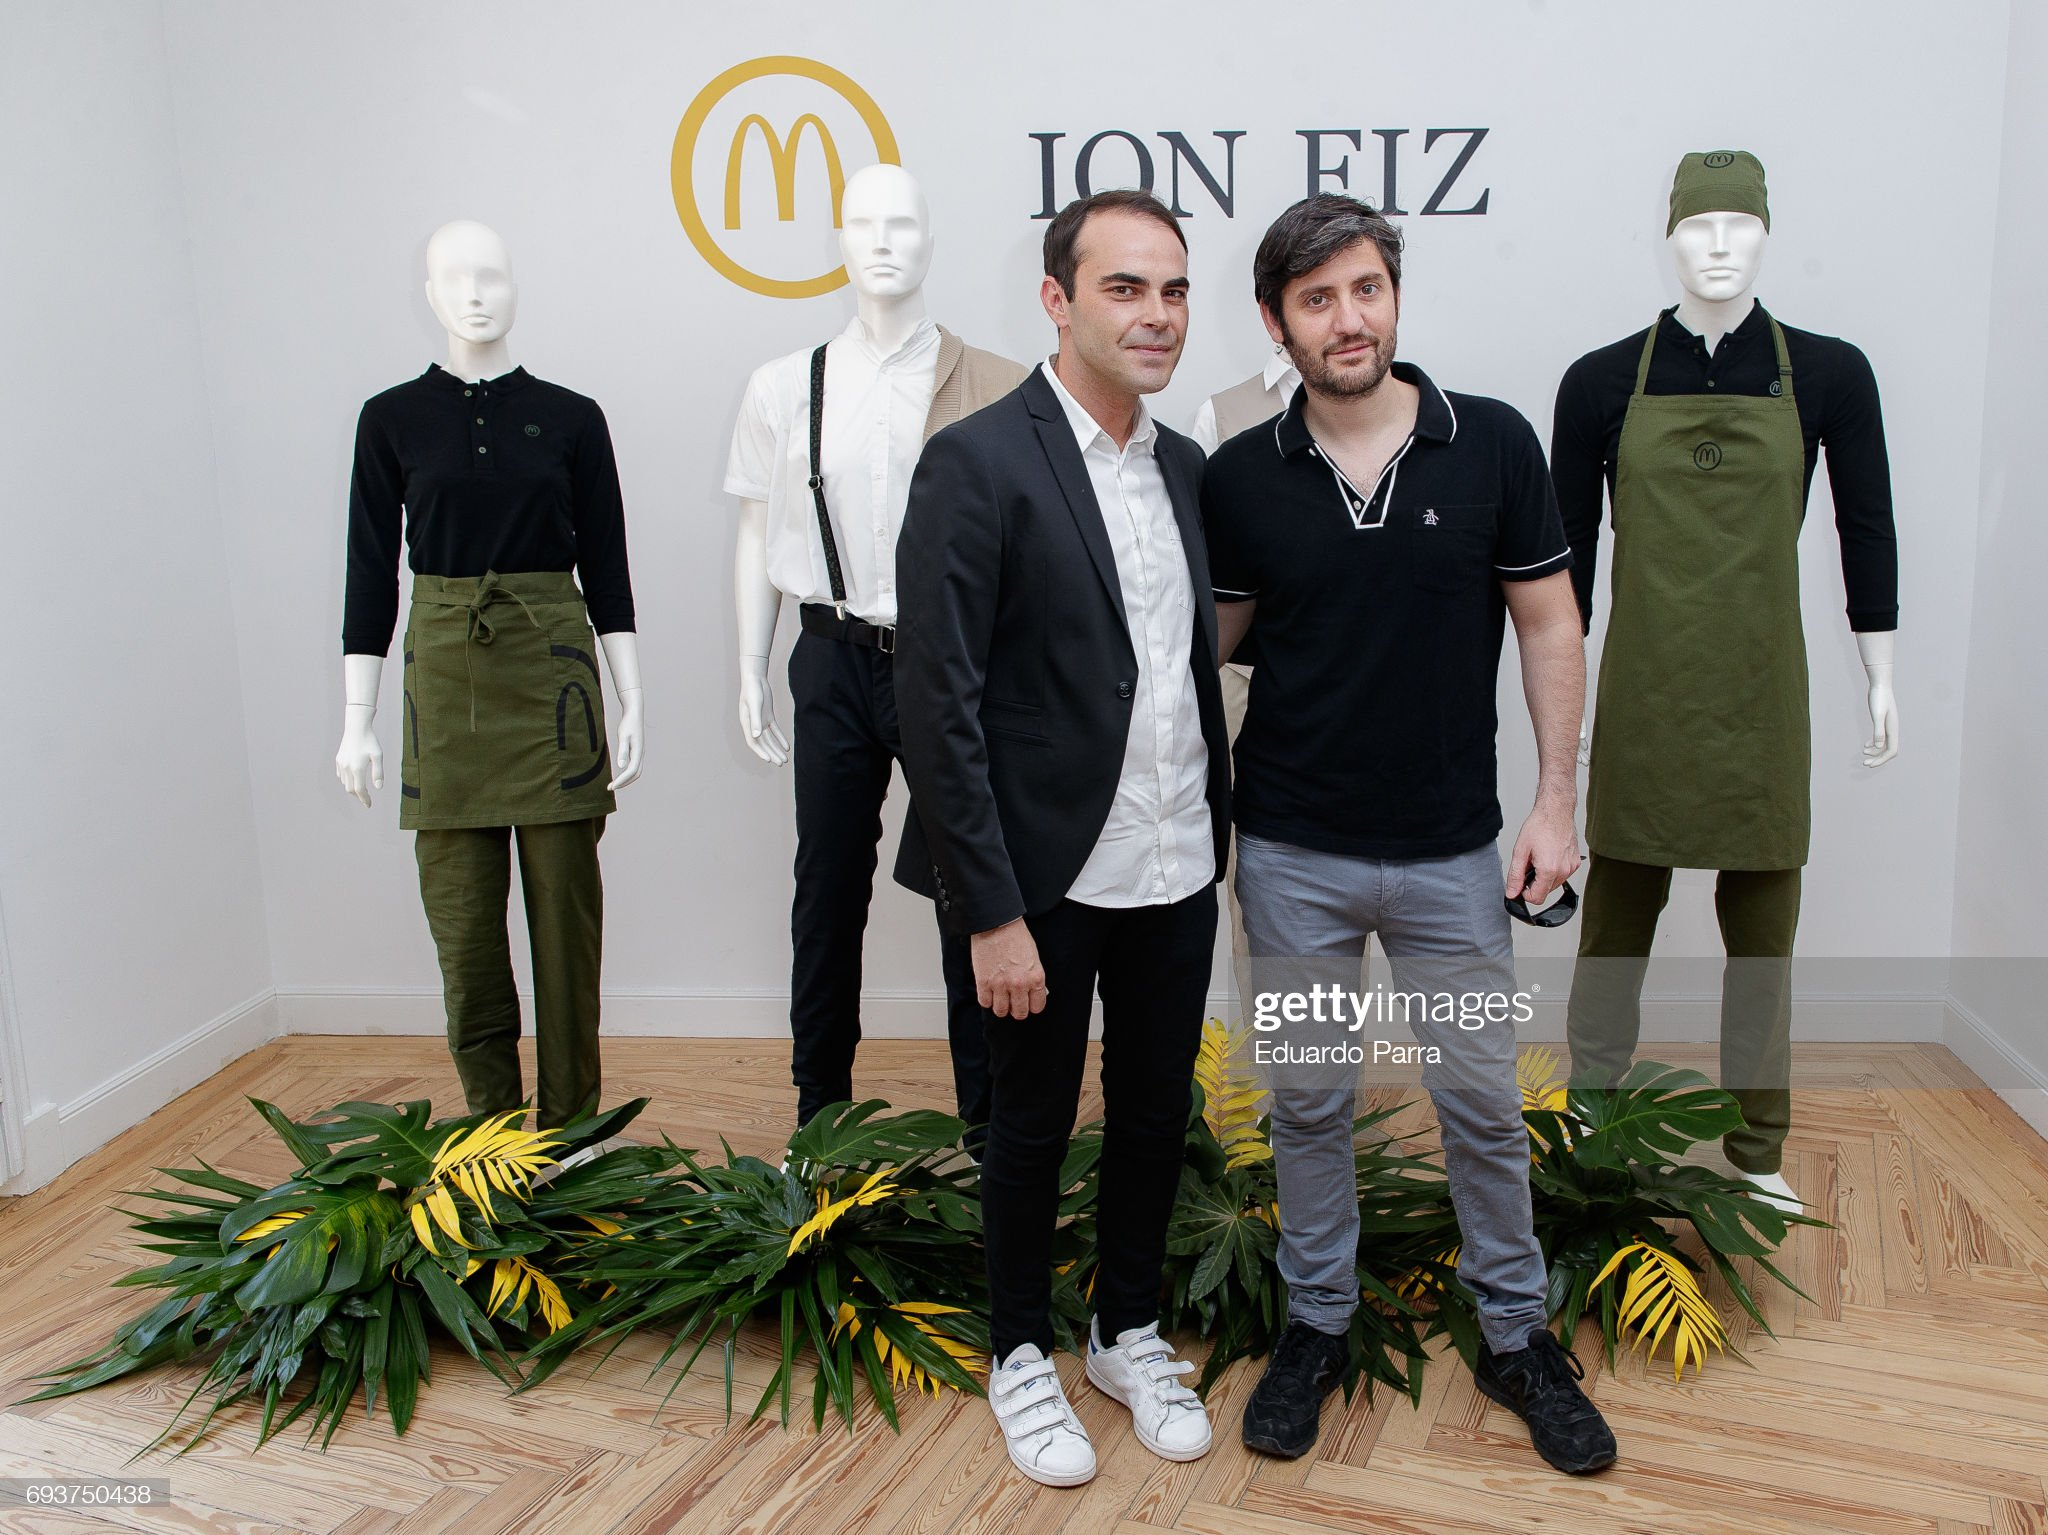 ¿Cuánto mide Max Marieges? - Altura Designer-ion-fiz-and-actor-max-marieges-attend-the-mcdonalds-new-picture-id693750438?s=2048x2048